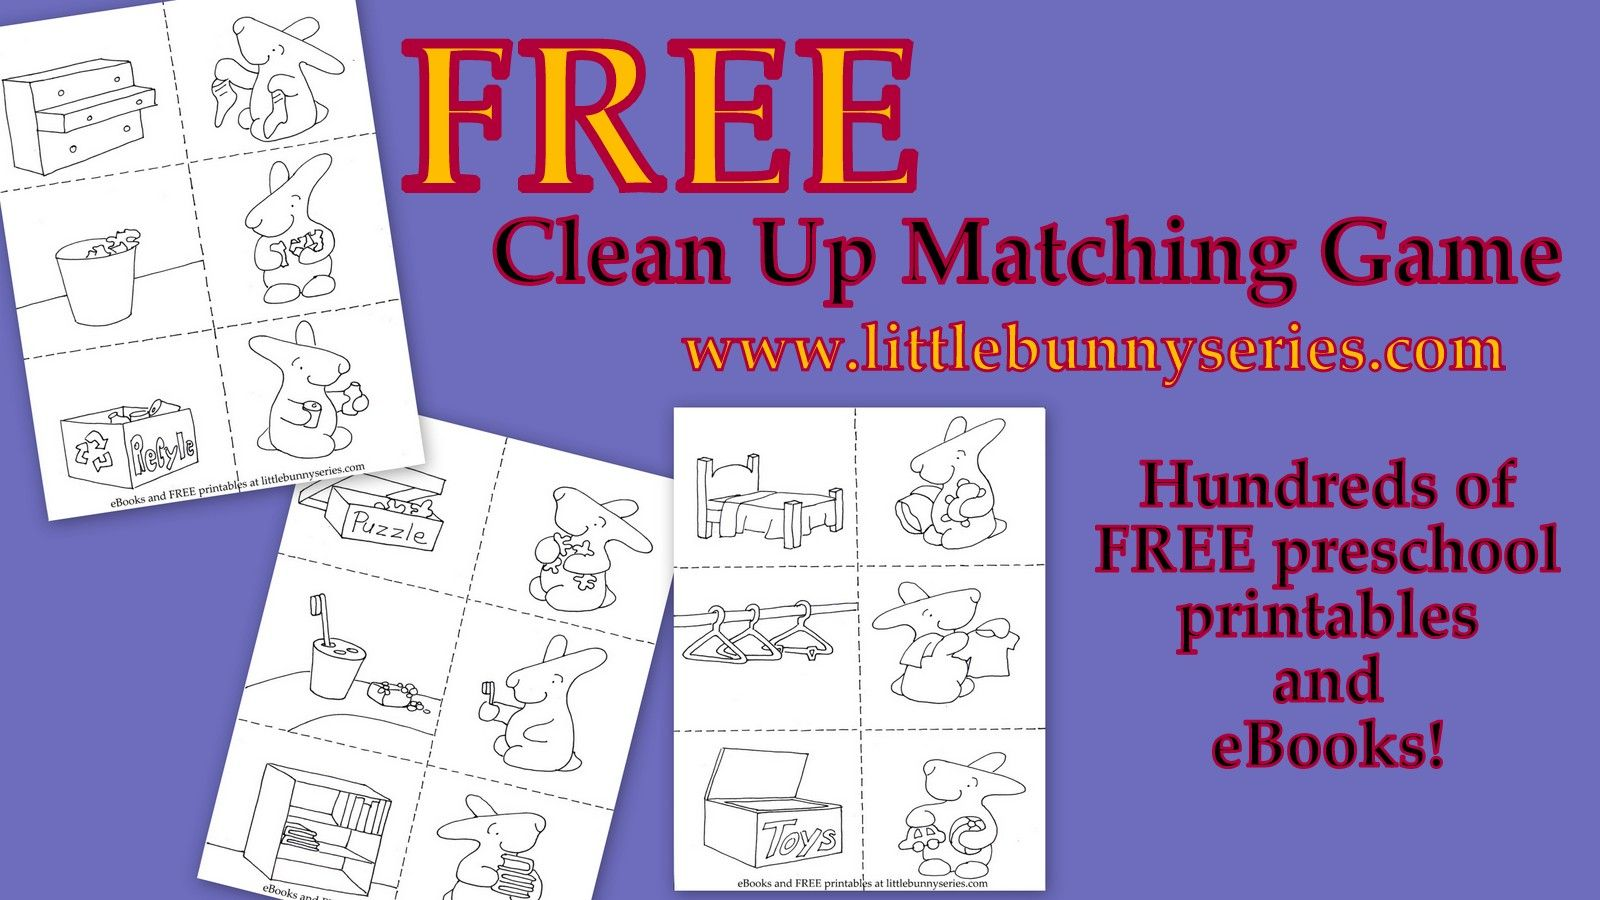 Ebooks And Hundred Of Free Preschool Printables At